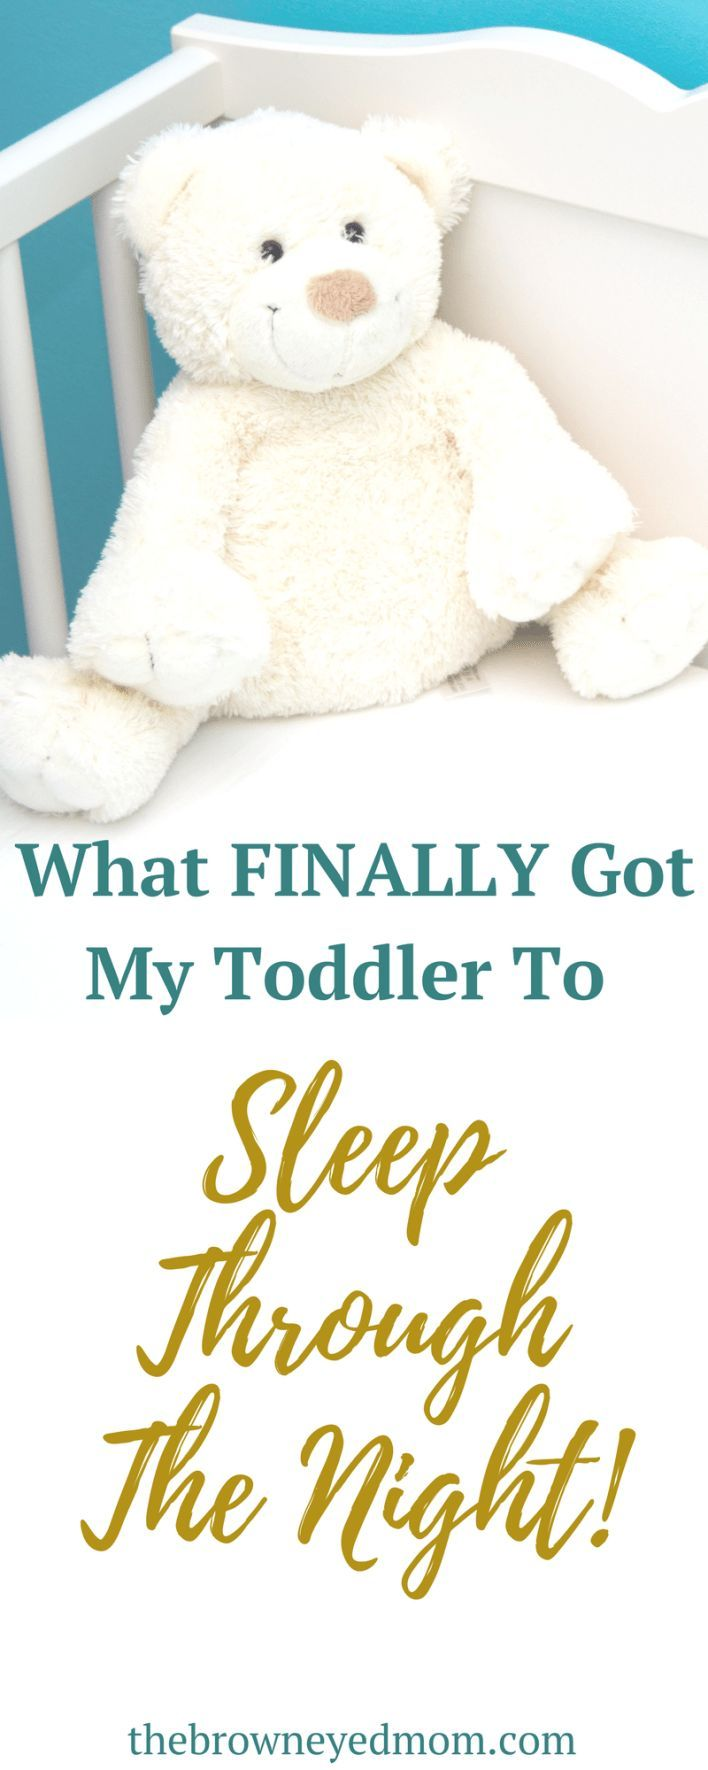 Sleep training is difficult. Especially when you wait until your baby is already a toddler! #sleeptraining